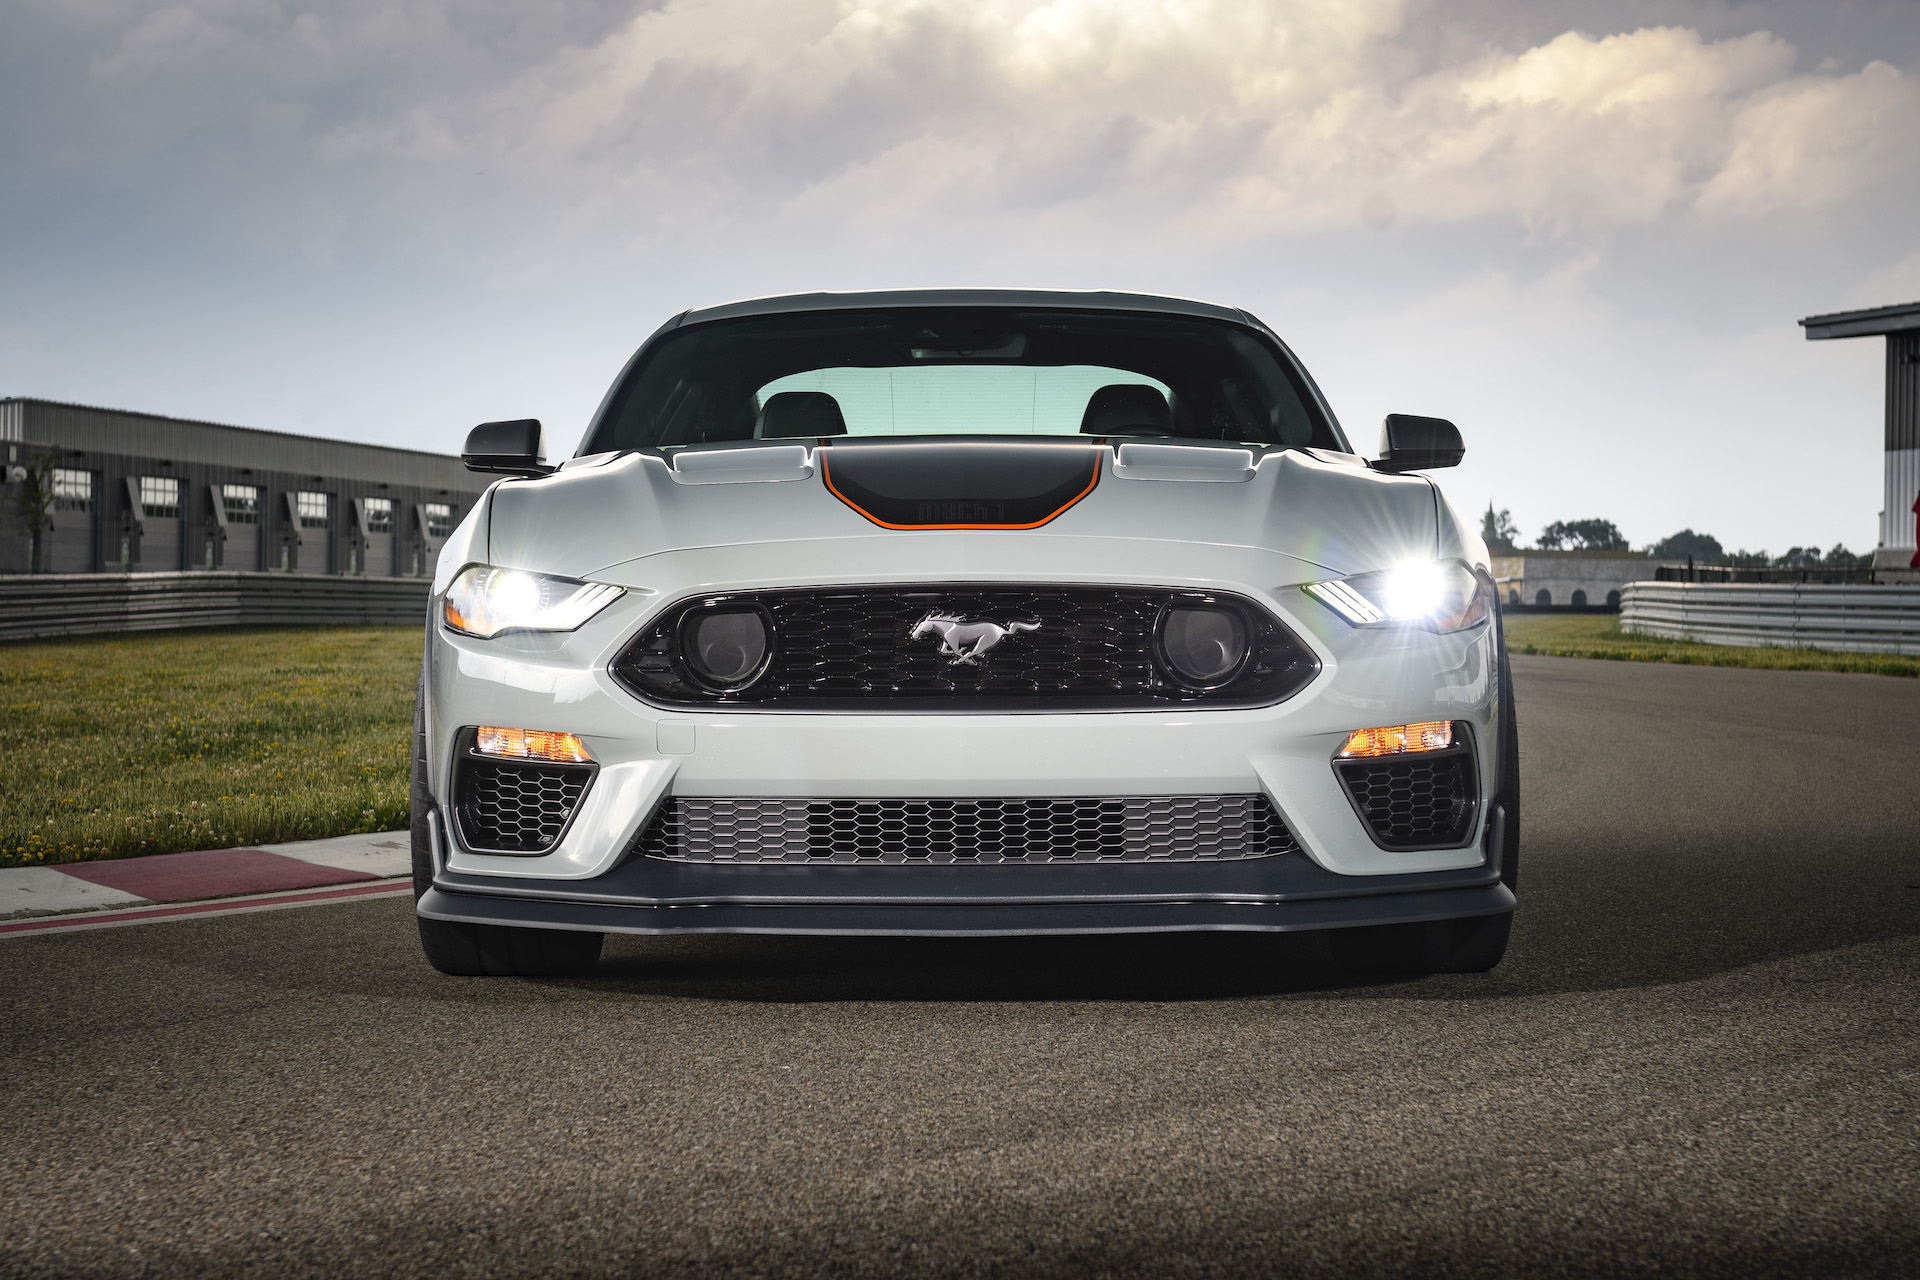 ford-mustang_100749347_h